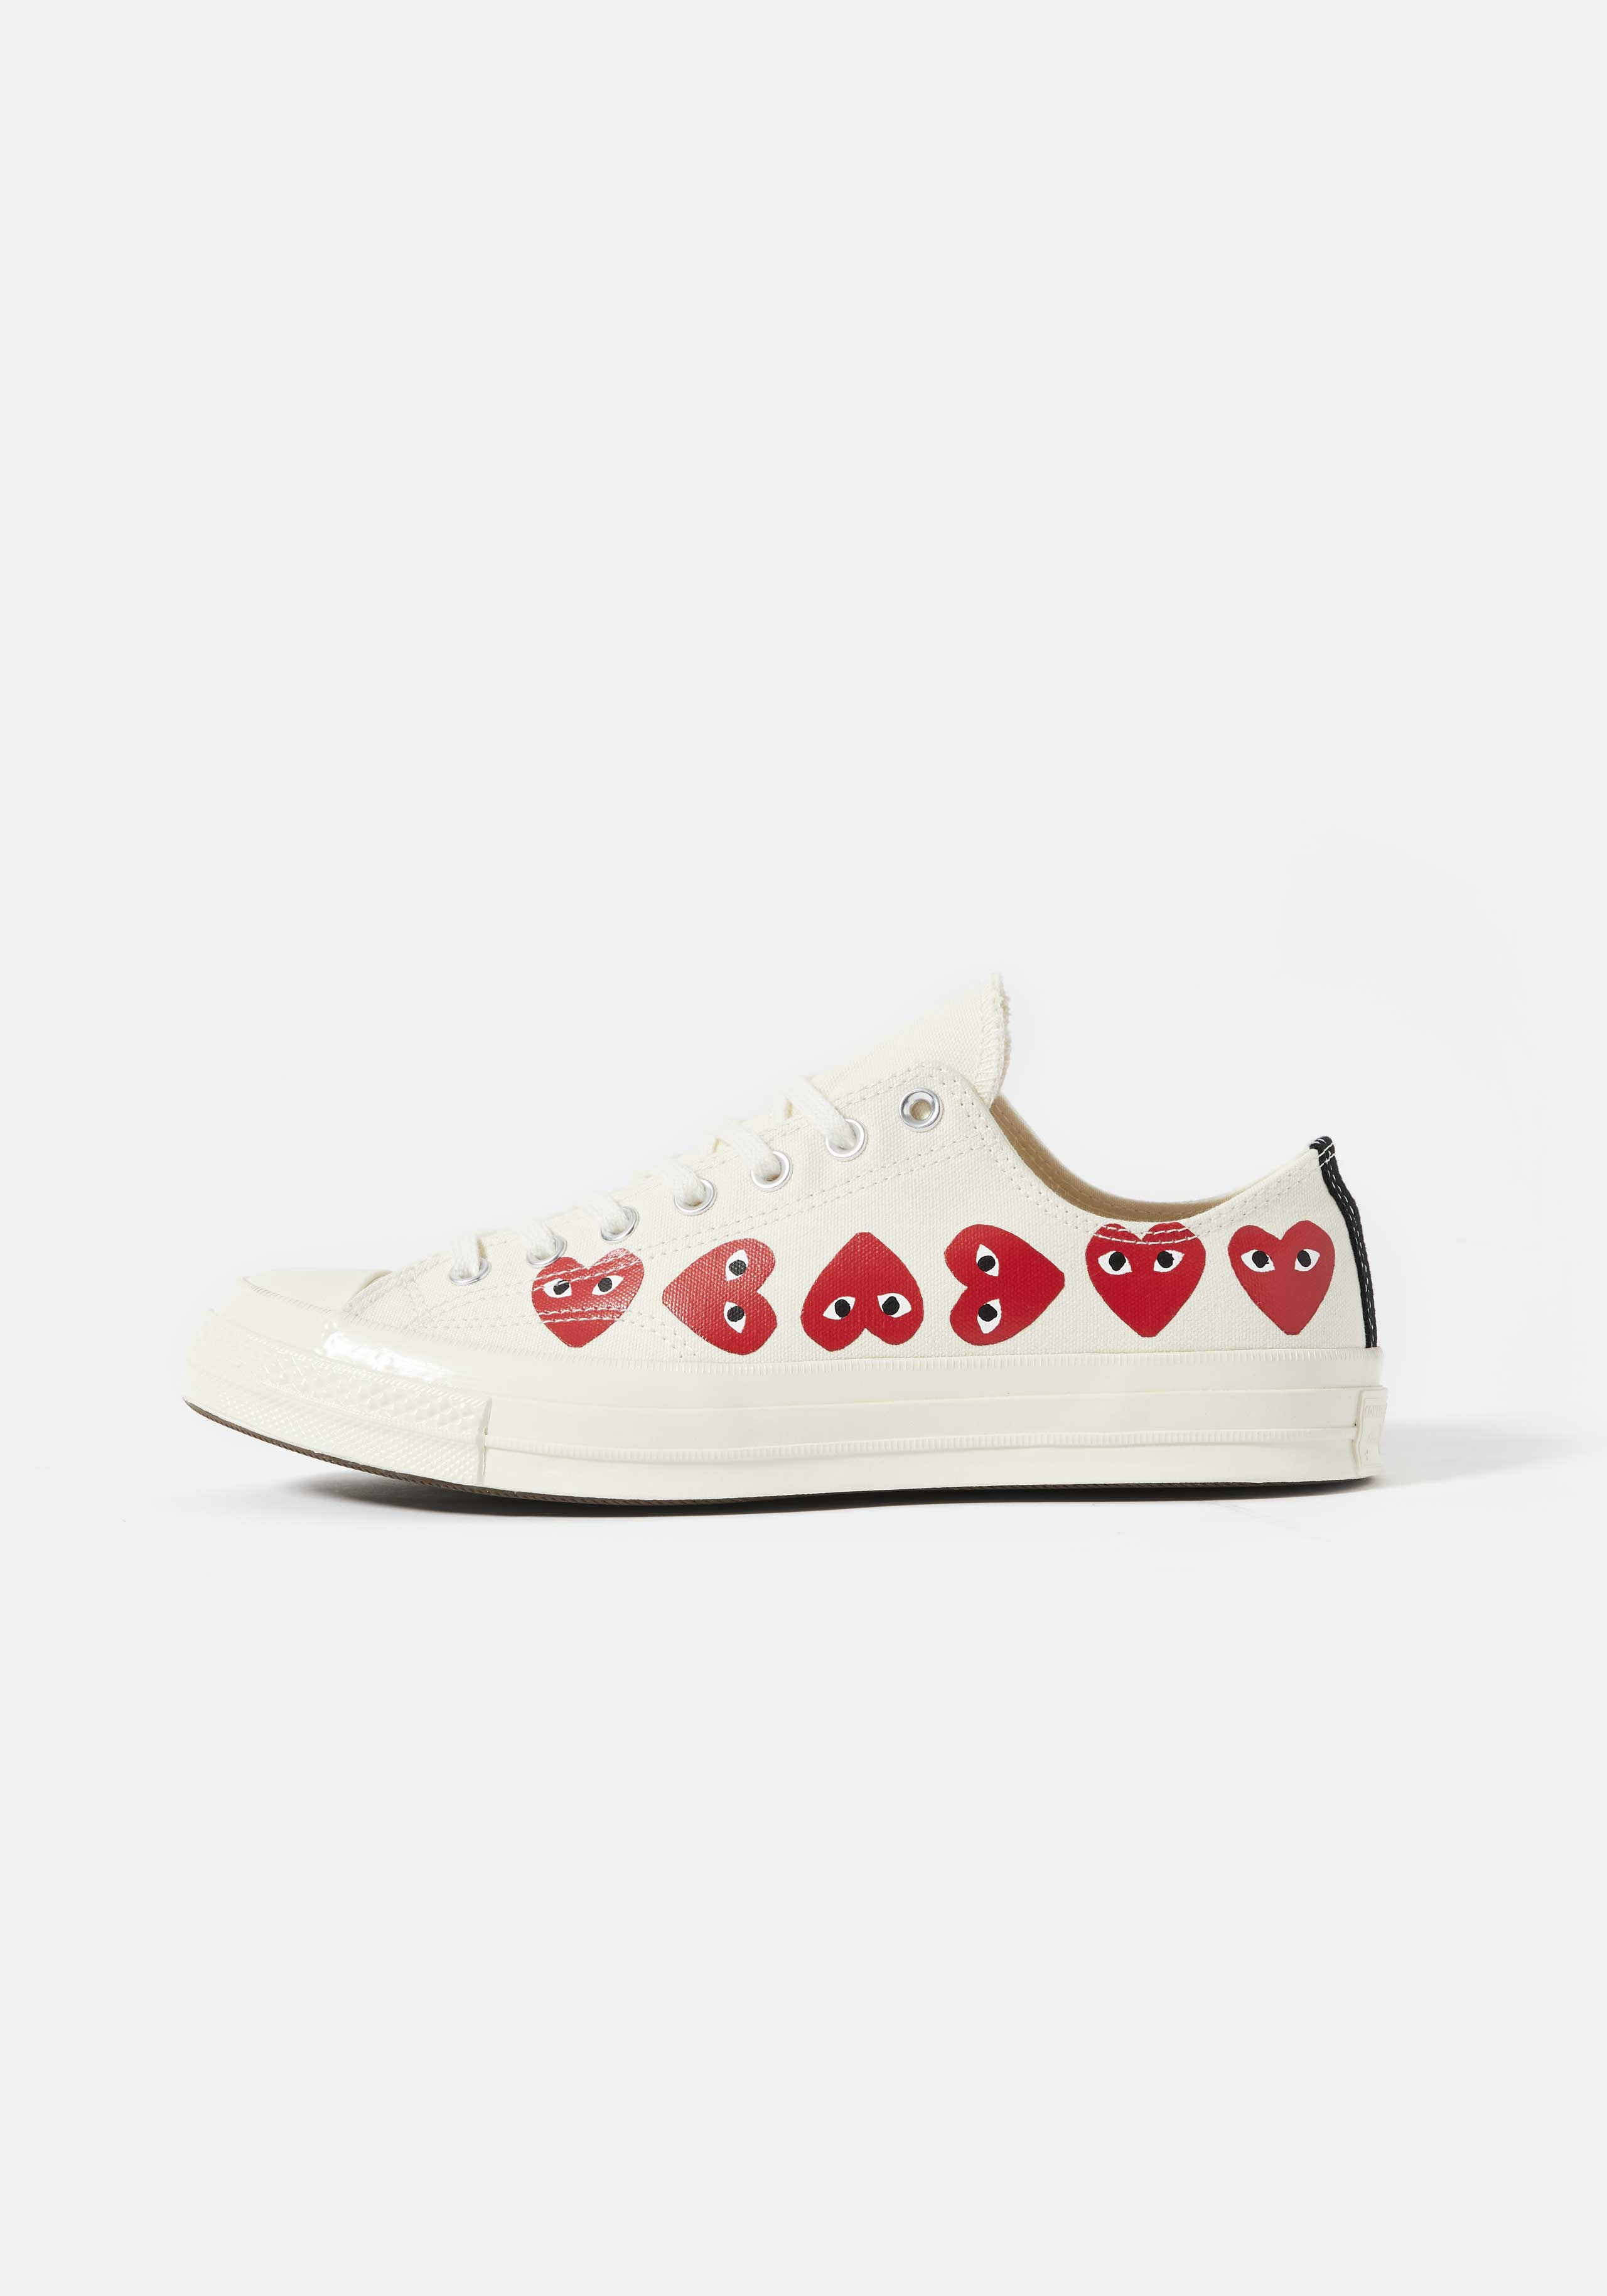 cdg play converse multi heart 70's low 1